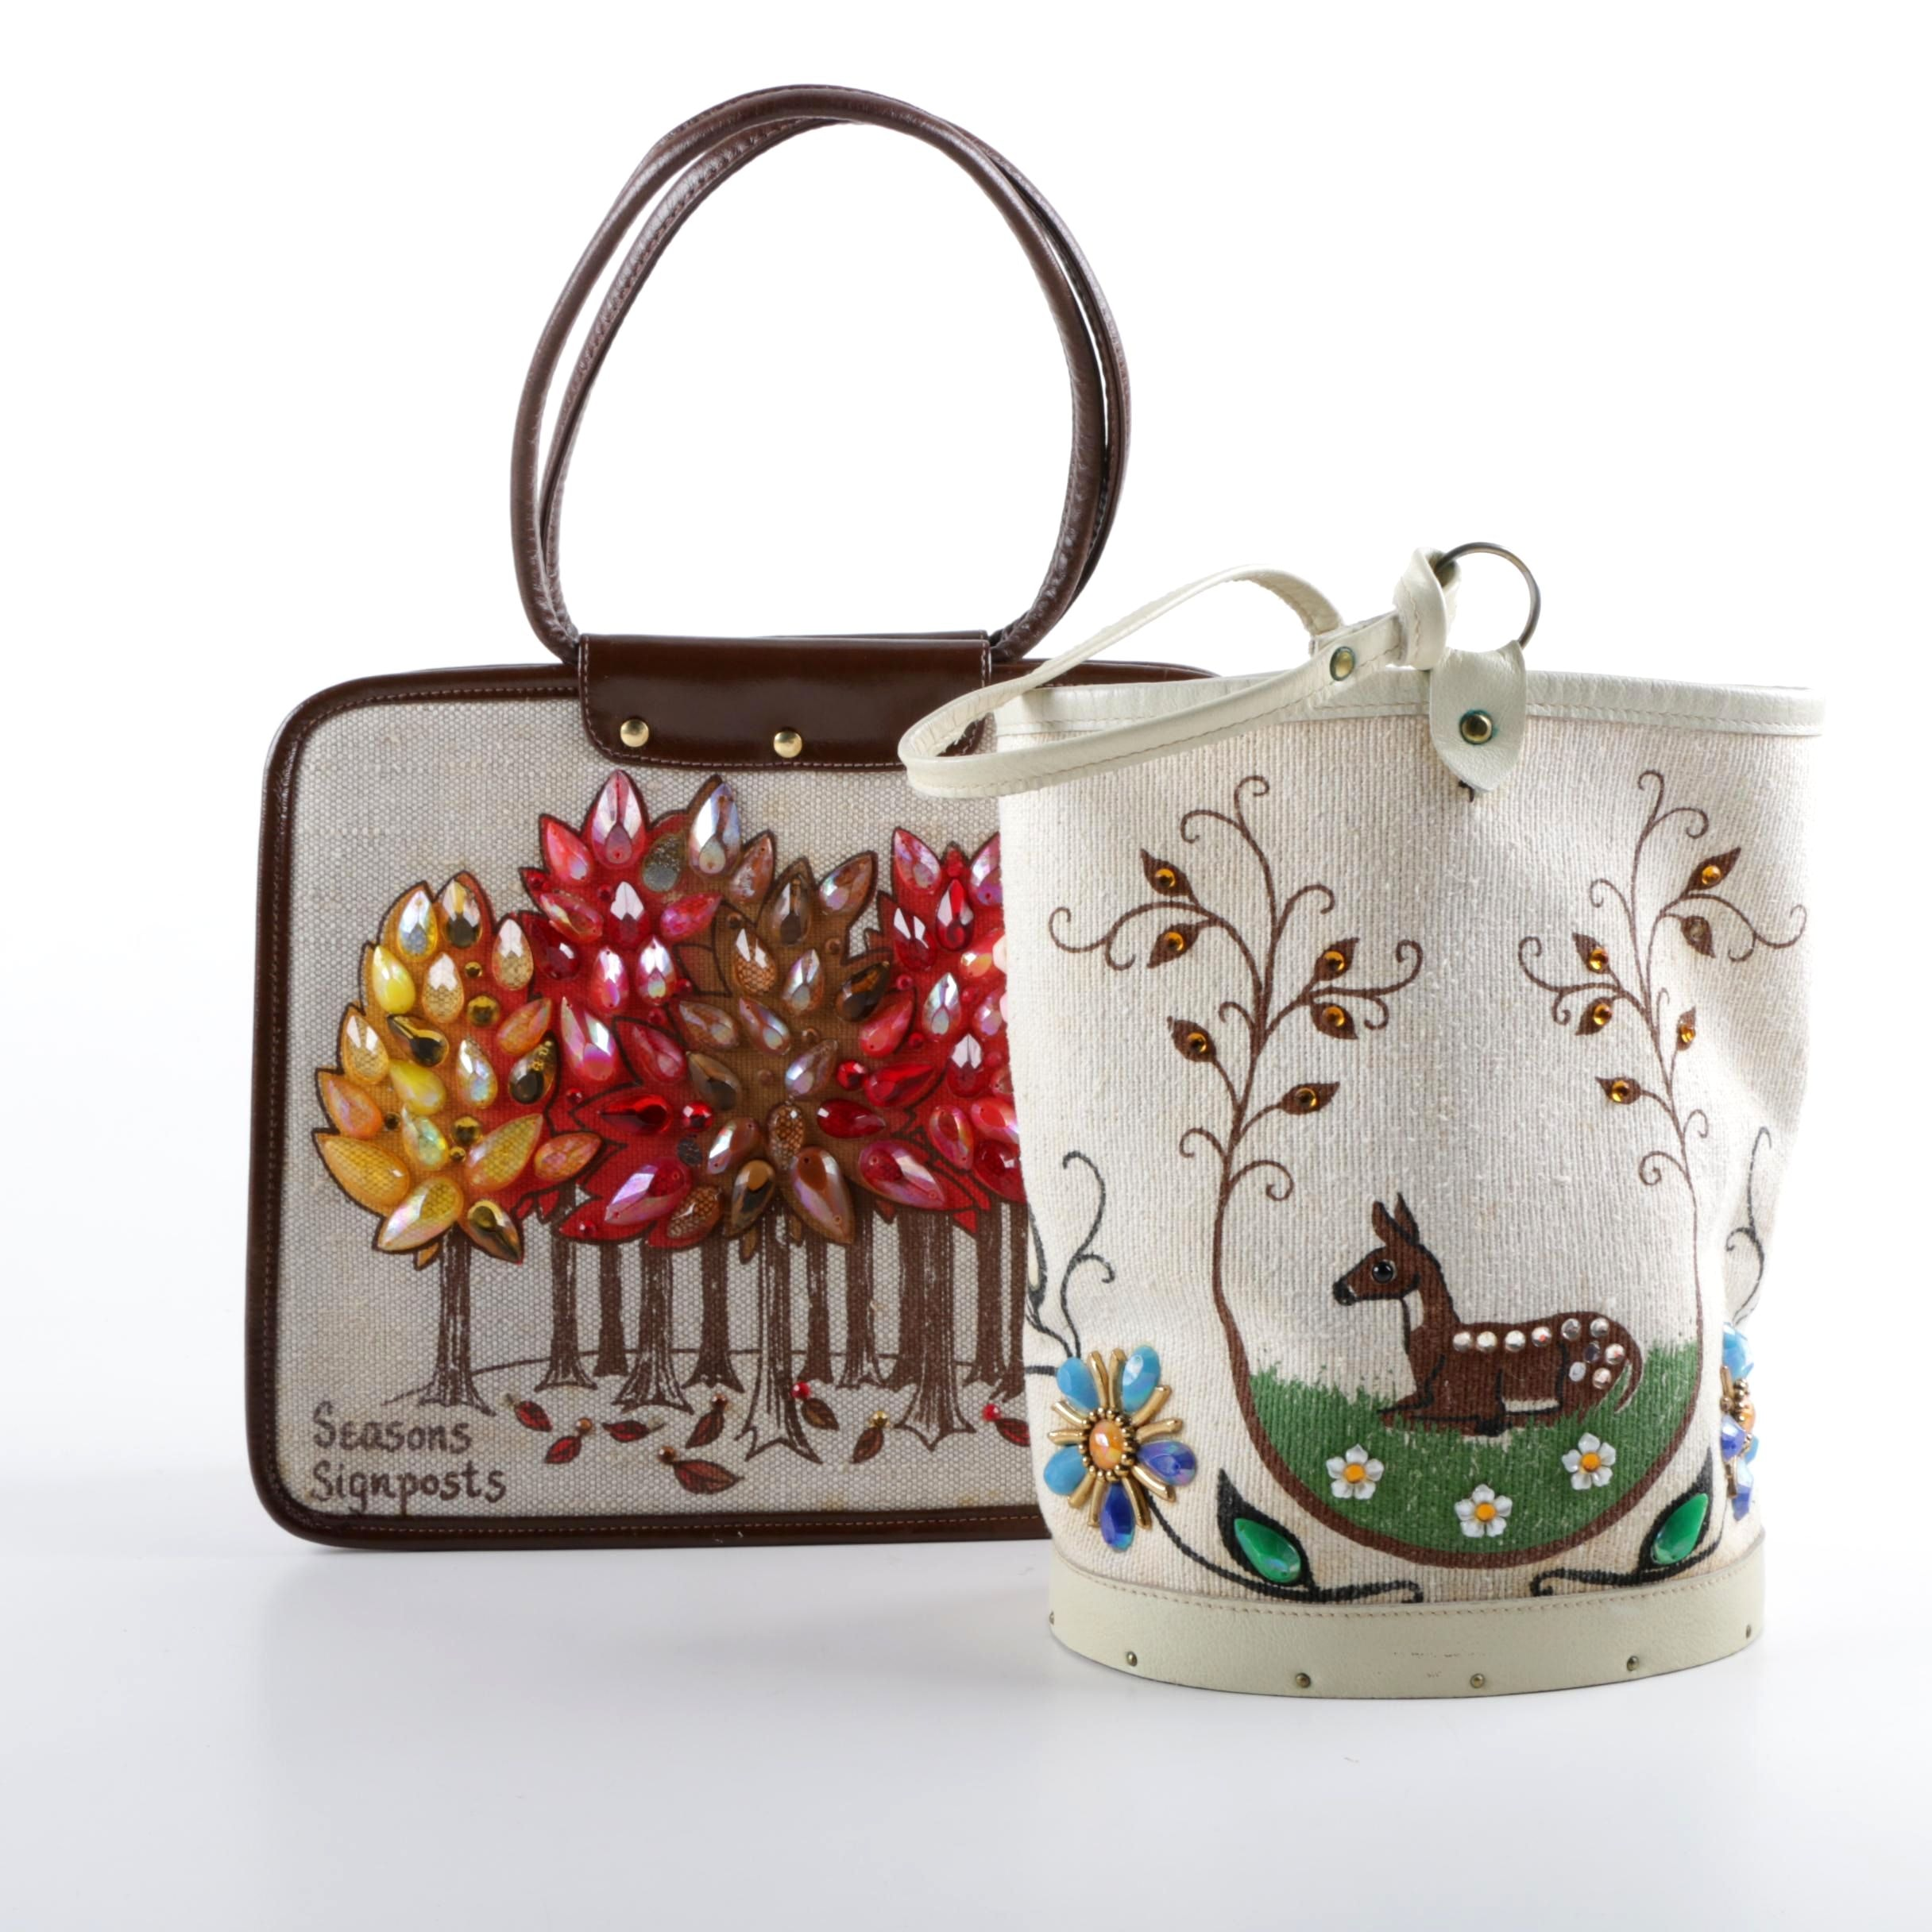 "1970s Enid Collins Embellished ""Seasons Signposts"" and ""Wild Life"" Handbags"